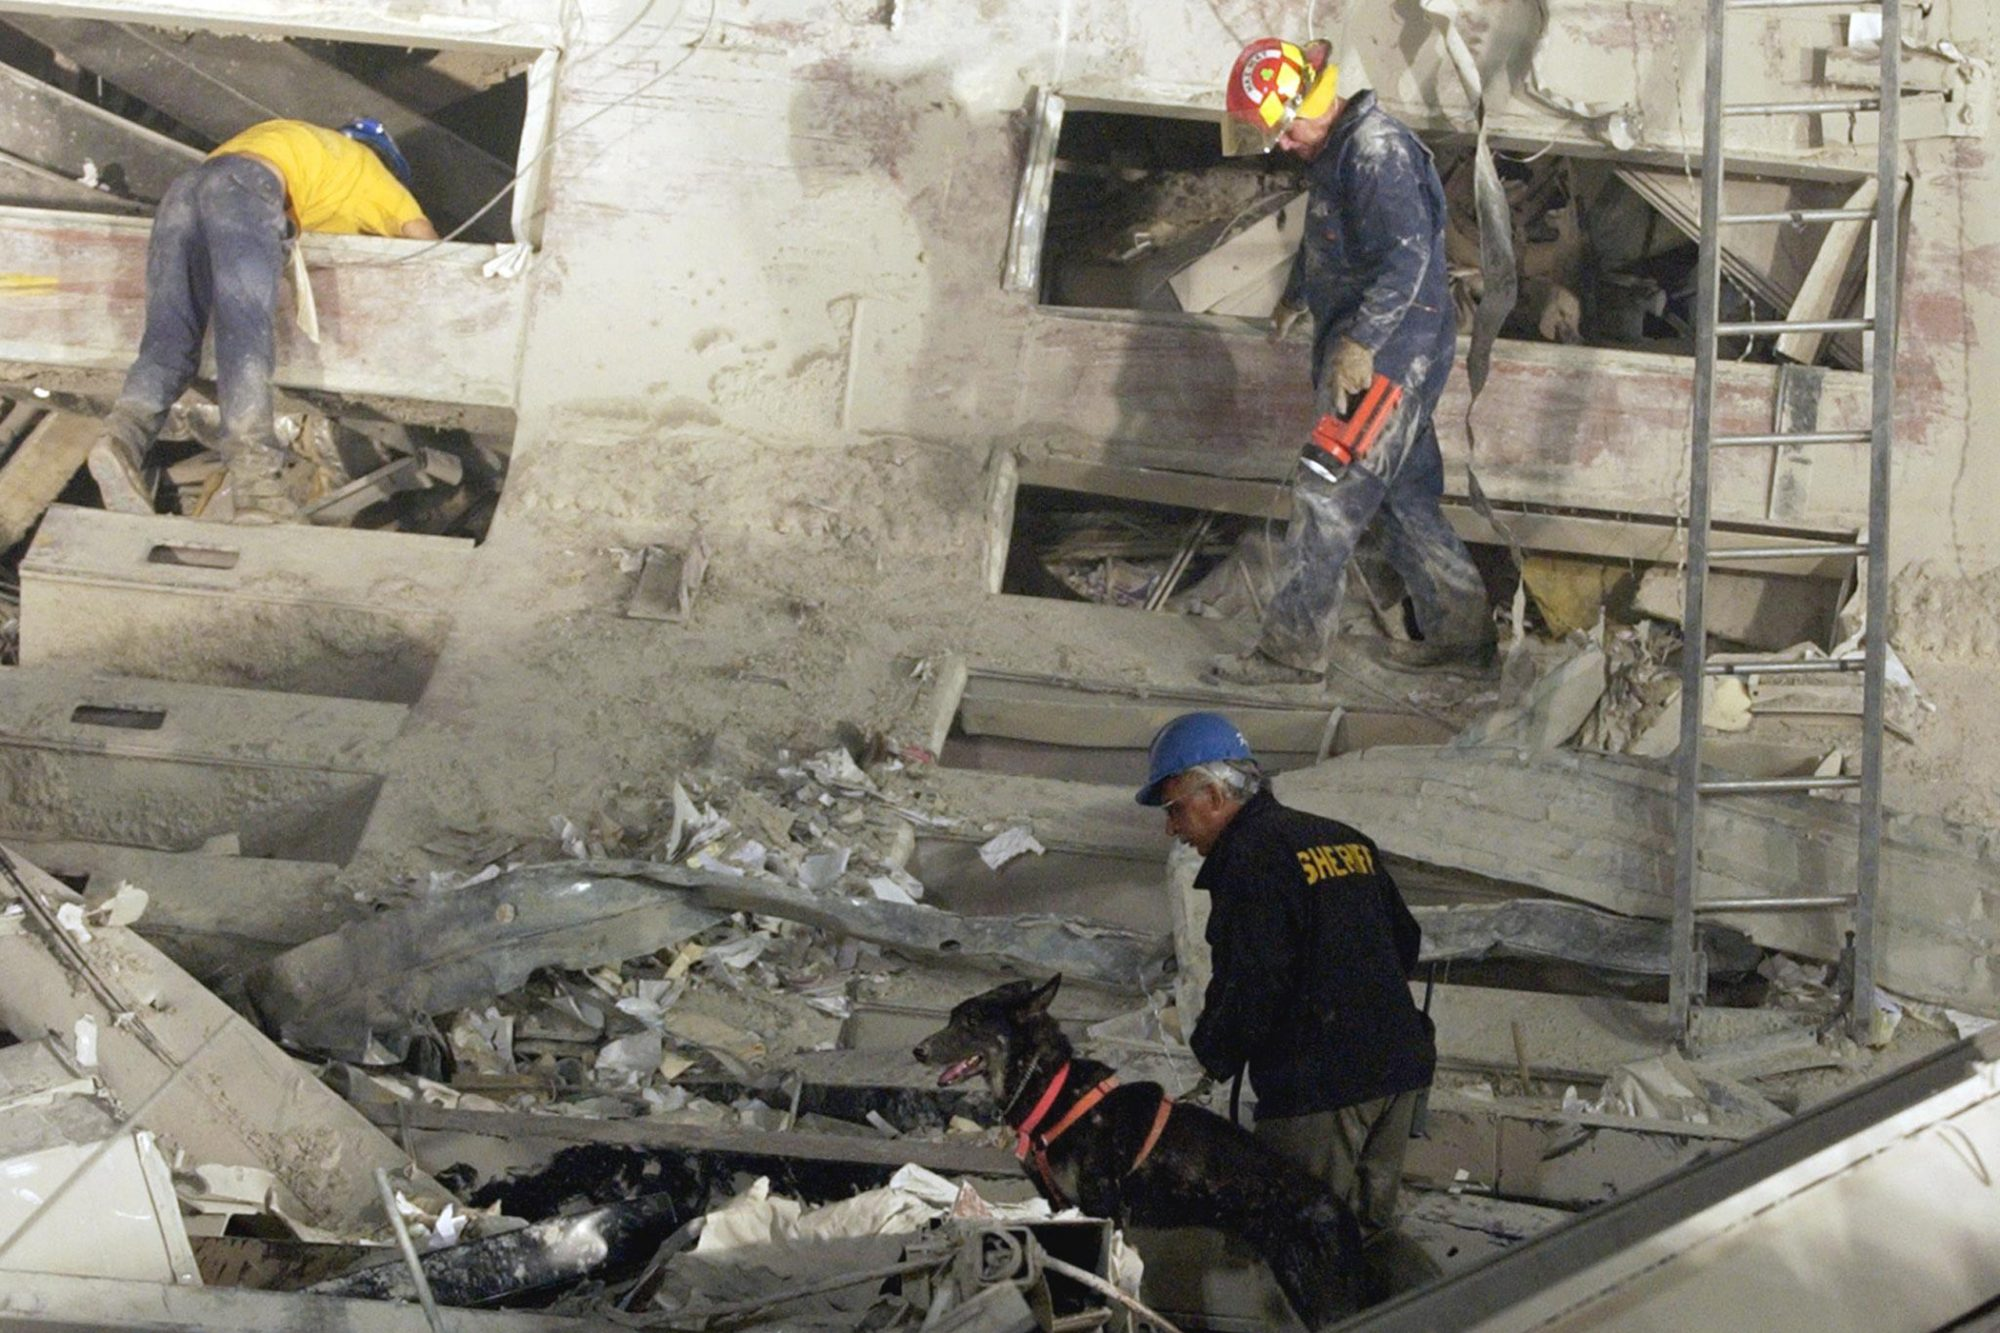 search and rescue 9/11 Dog with three rescuers searching rubble